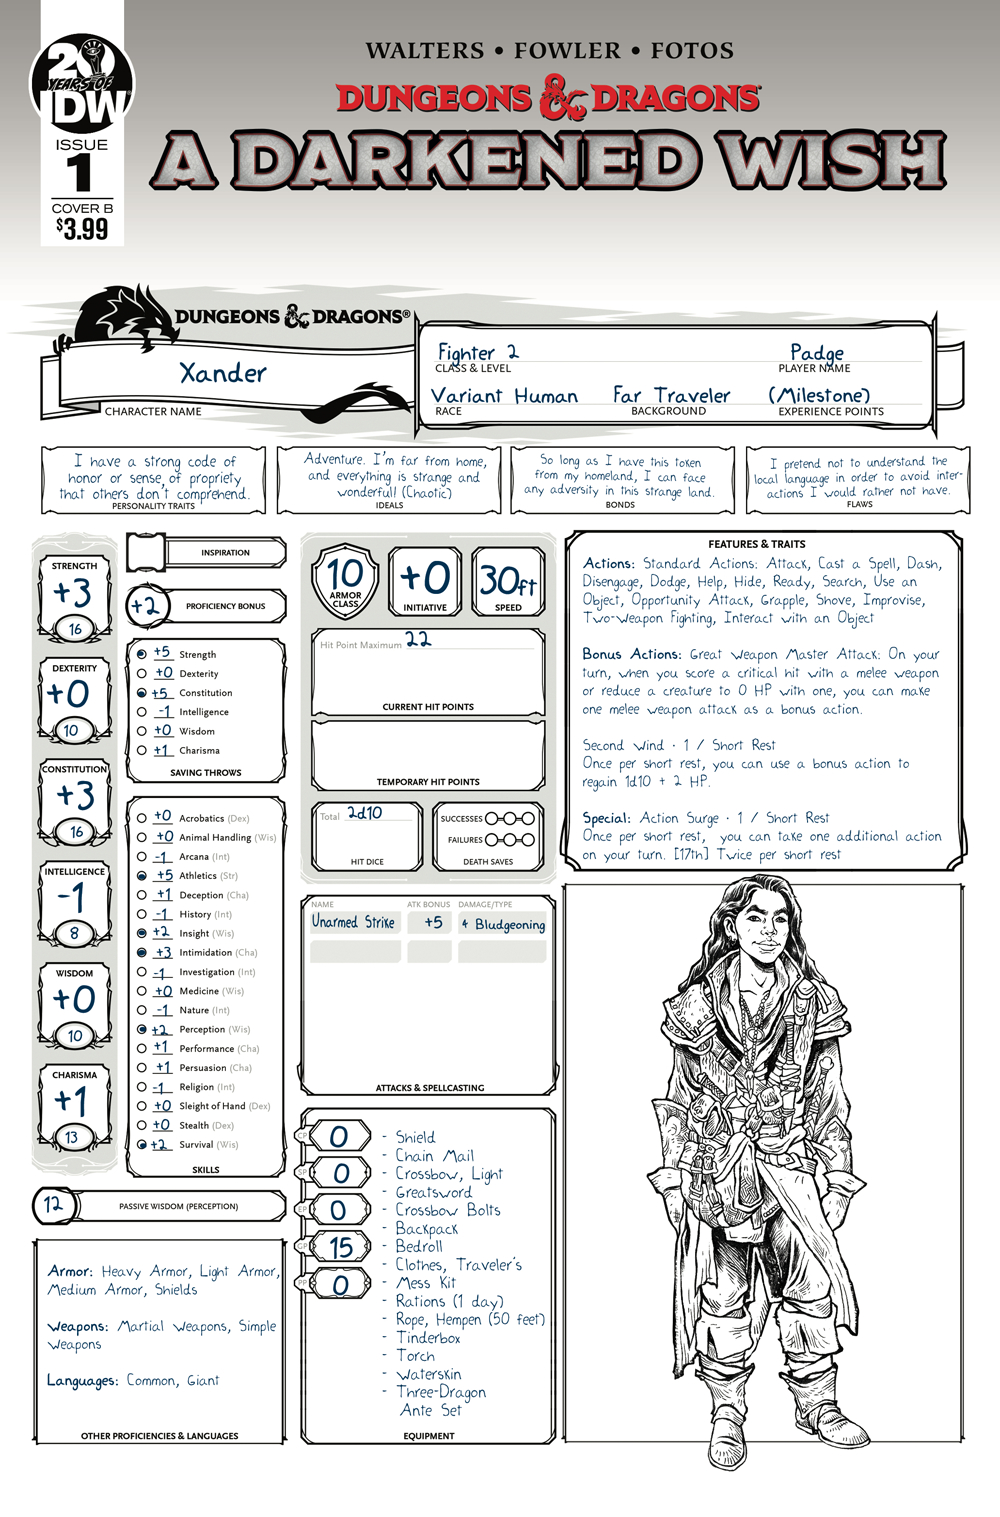 DUNGEONS & DRAGONS A DARKENED WISH #1 CVR B CHARACTER SHEET